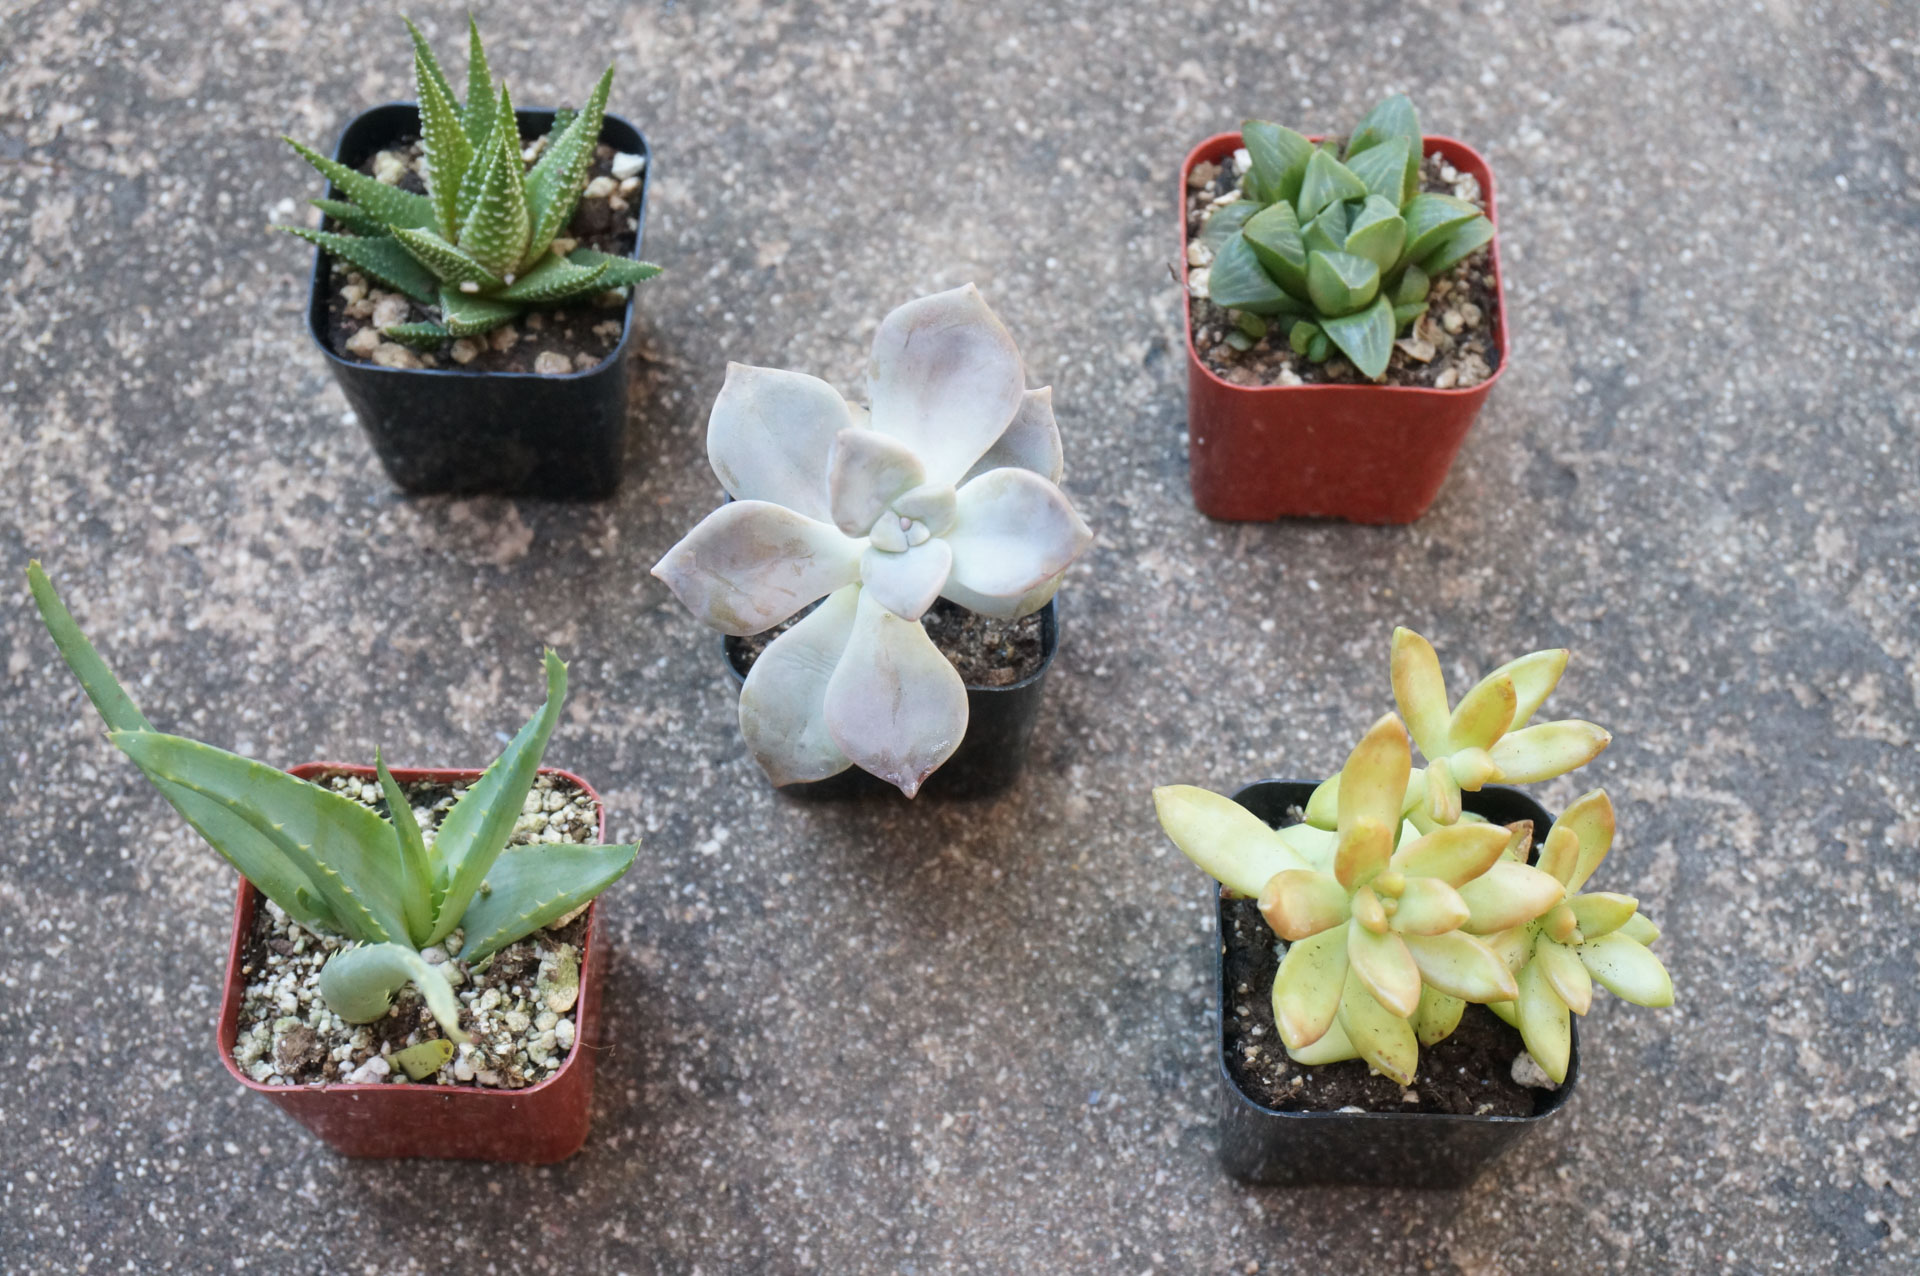 Choosing succulents with a variety of colors